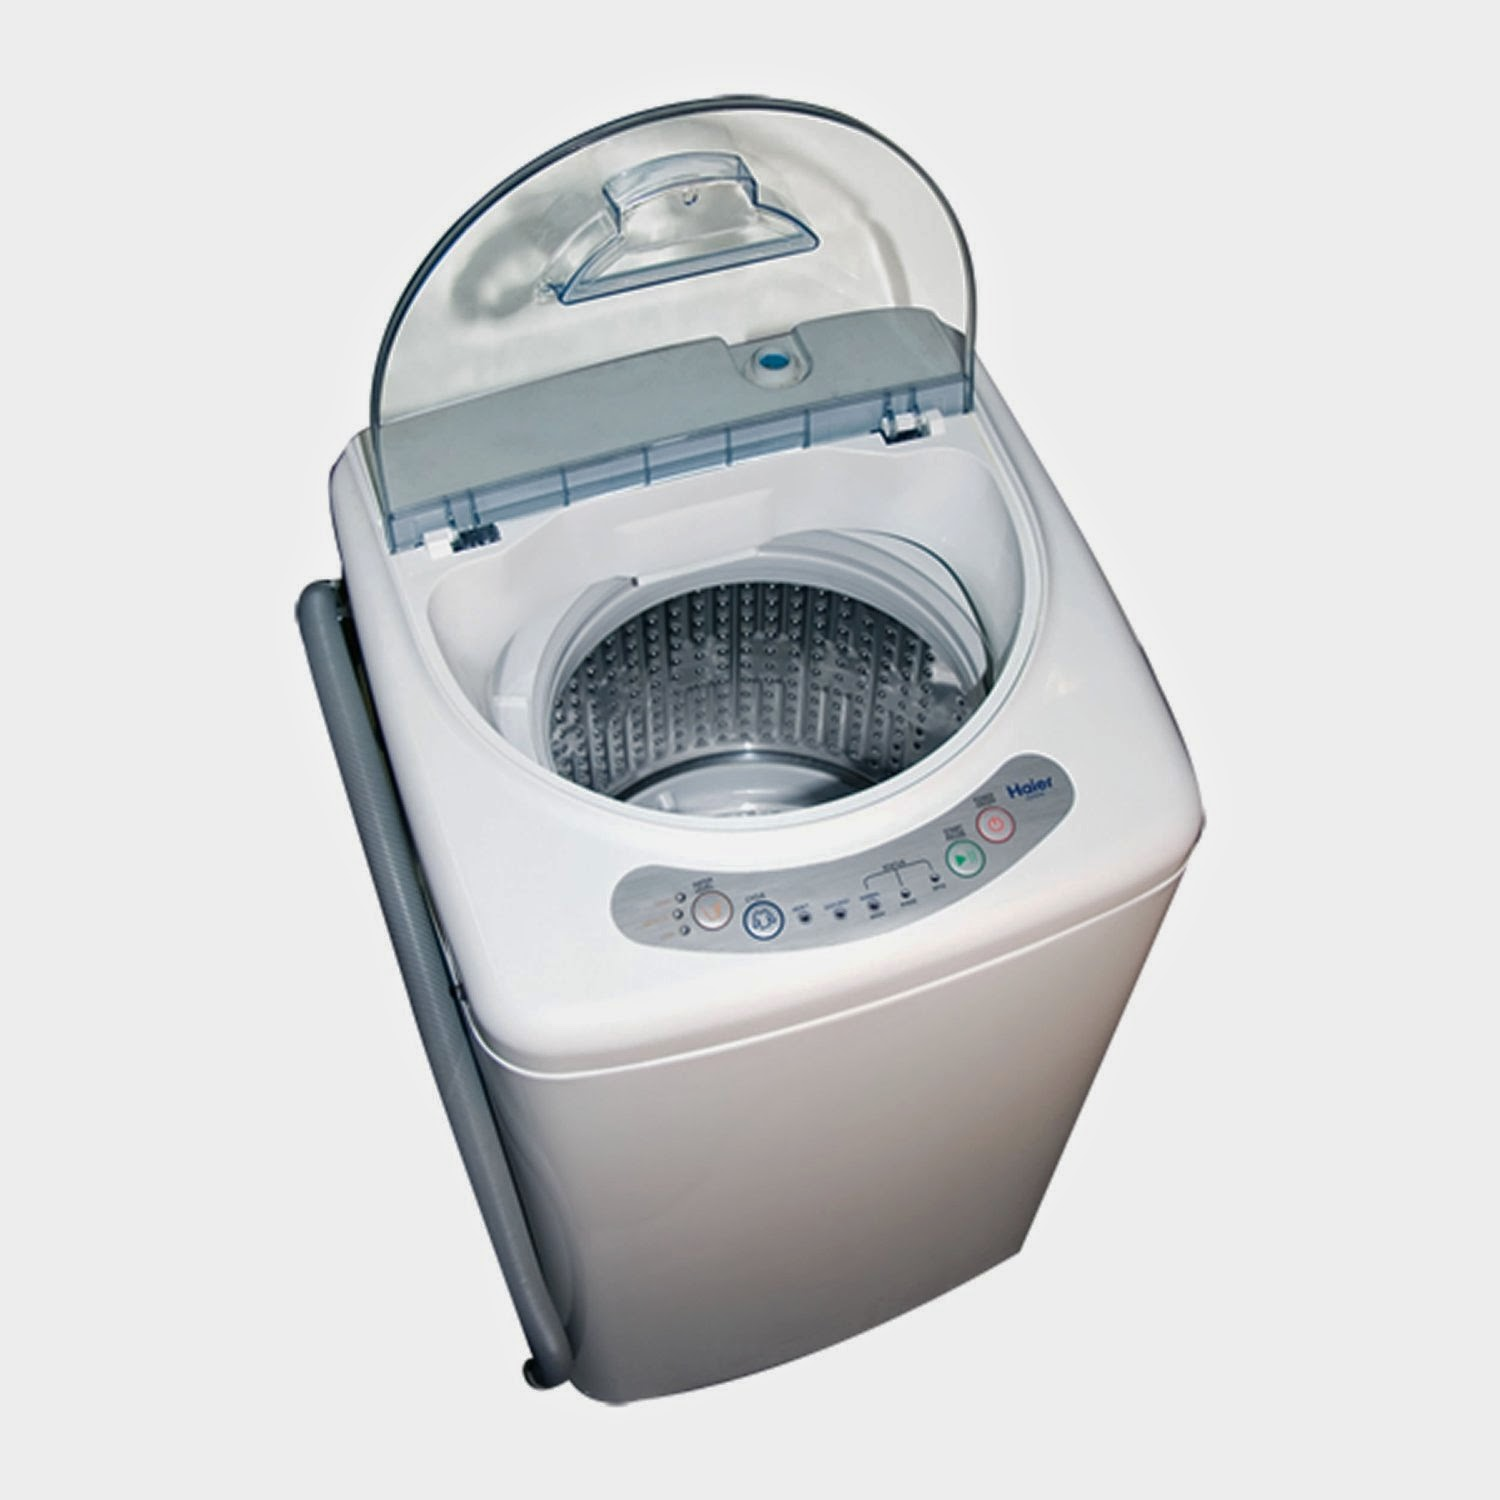 Washer And Dryer Bundle washer and dryer for sale